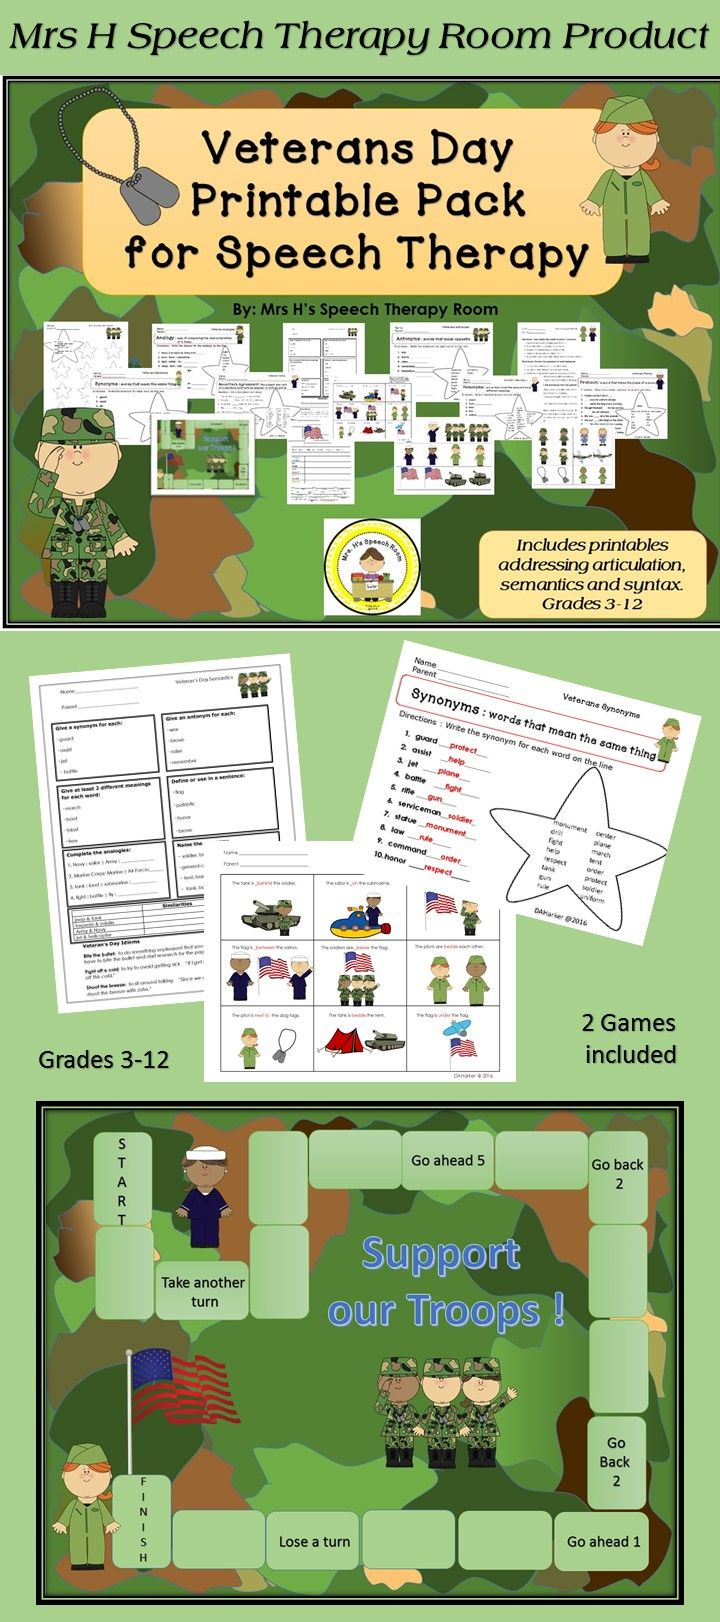 $~    Veterans Day Memory Game  ~    Veterans Day Board Game ~    Articulation Worksheet ~    Preposition Worksheet ~    Synonym Worksheet ~    Antonym Worksheet ~    Homonym Worksheet ~    Analogy Worksheet ~    Plural Worksheet ~    Noun-Verb Agreement Worksheet ~    American Flag EET Defining Worksheet ~    Veterans Day Wh Questions ~     High Level Veterans Day Semantic Skill Sheet ~     High Level Veterans Day Vocabulary Fill In ~     High Level Veterans Day Syntactic Skill Sheet